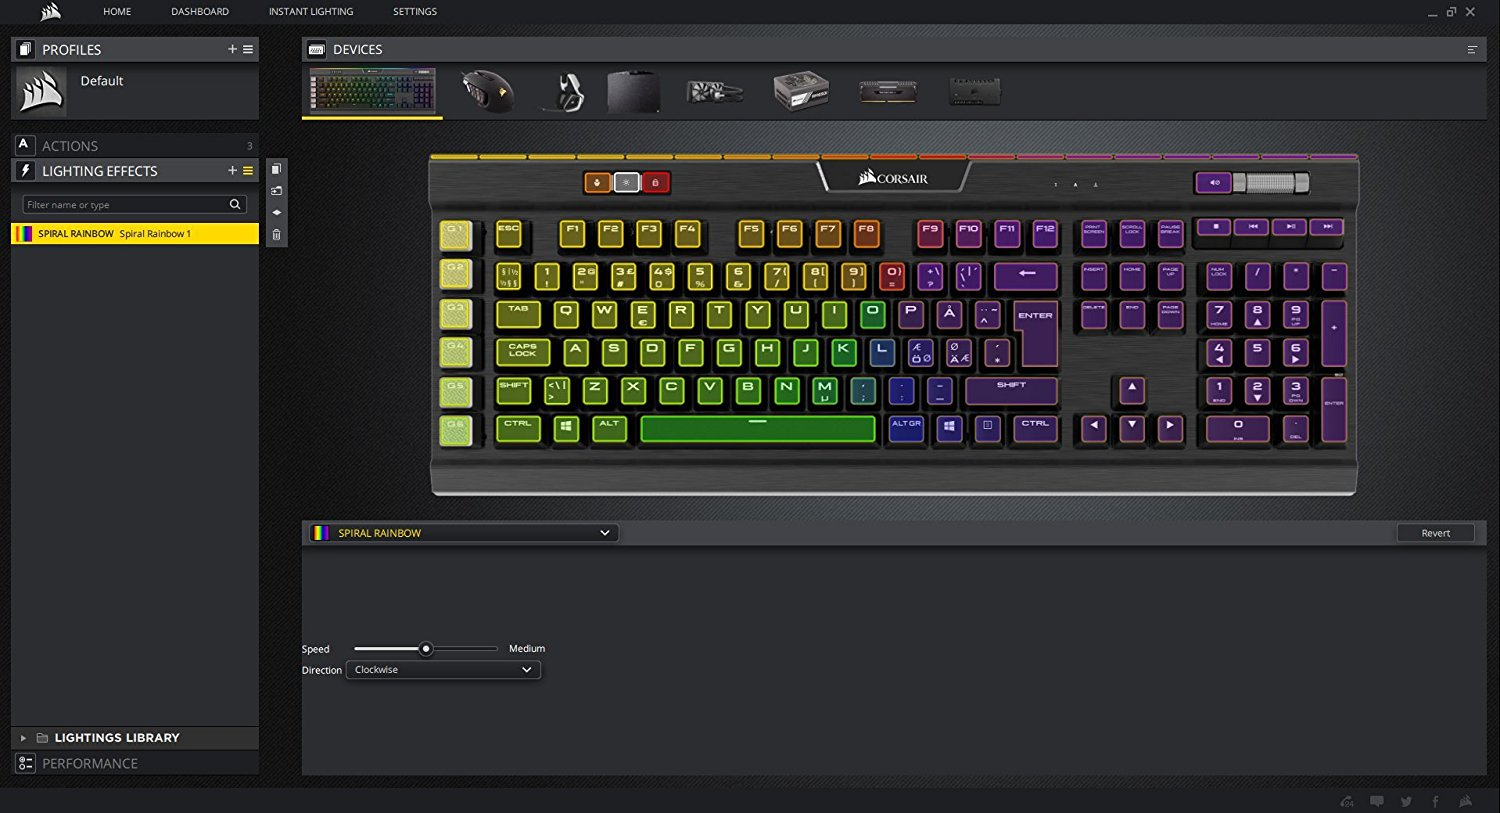 Corsair K70 LUX RGB Mechanical Gaming Keyboard - Linear & Quiet - Cherry MX  Red - RGB LED Backlit